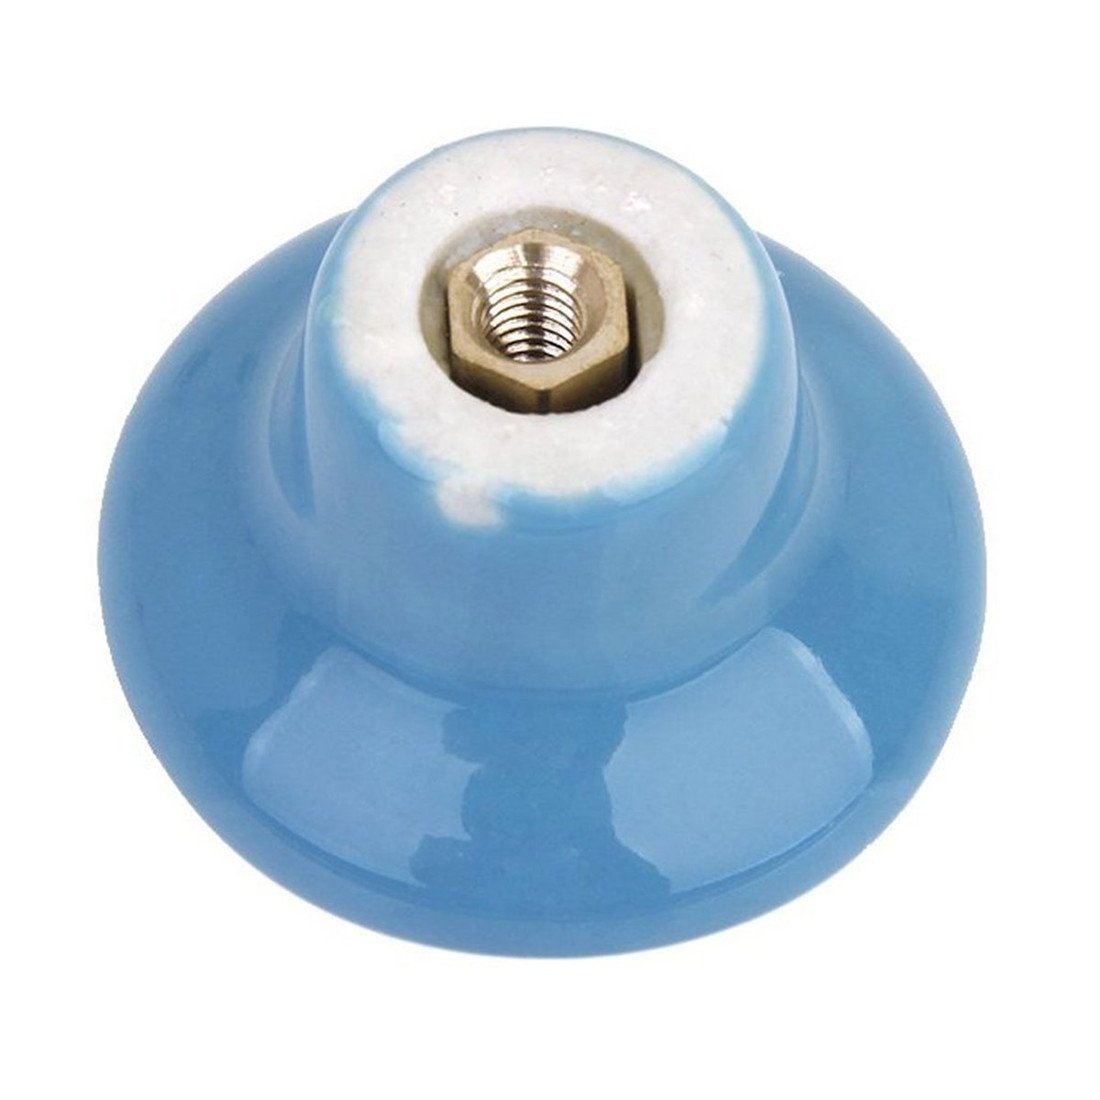 Choubao 12PCS Blue Drawer Cupboard Cabinet Knobs Wardrobe Home Kitchen Hardware Knob Colorful Round Ceramic Pull Handle - S by Choubao (Image #4)